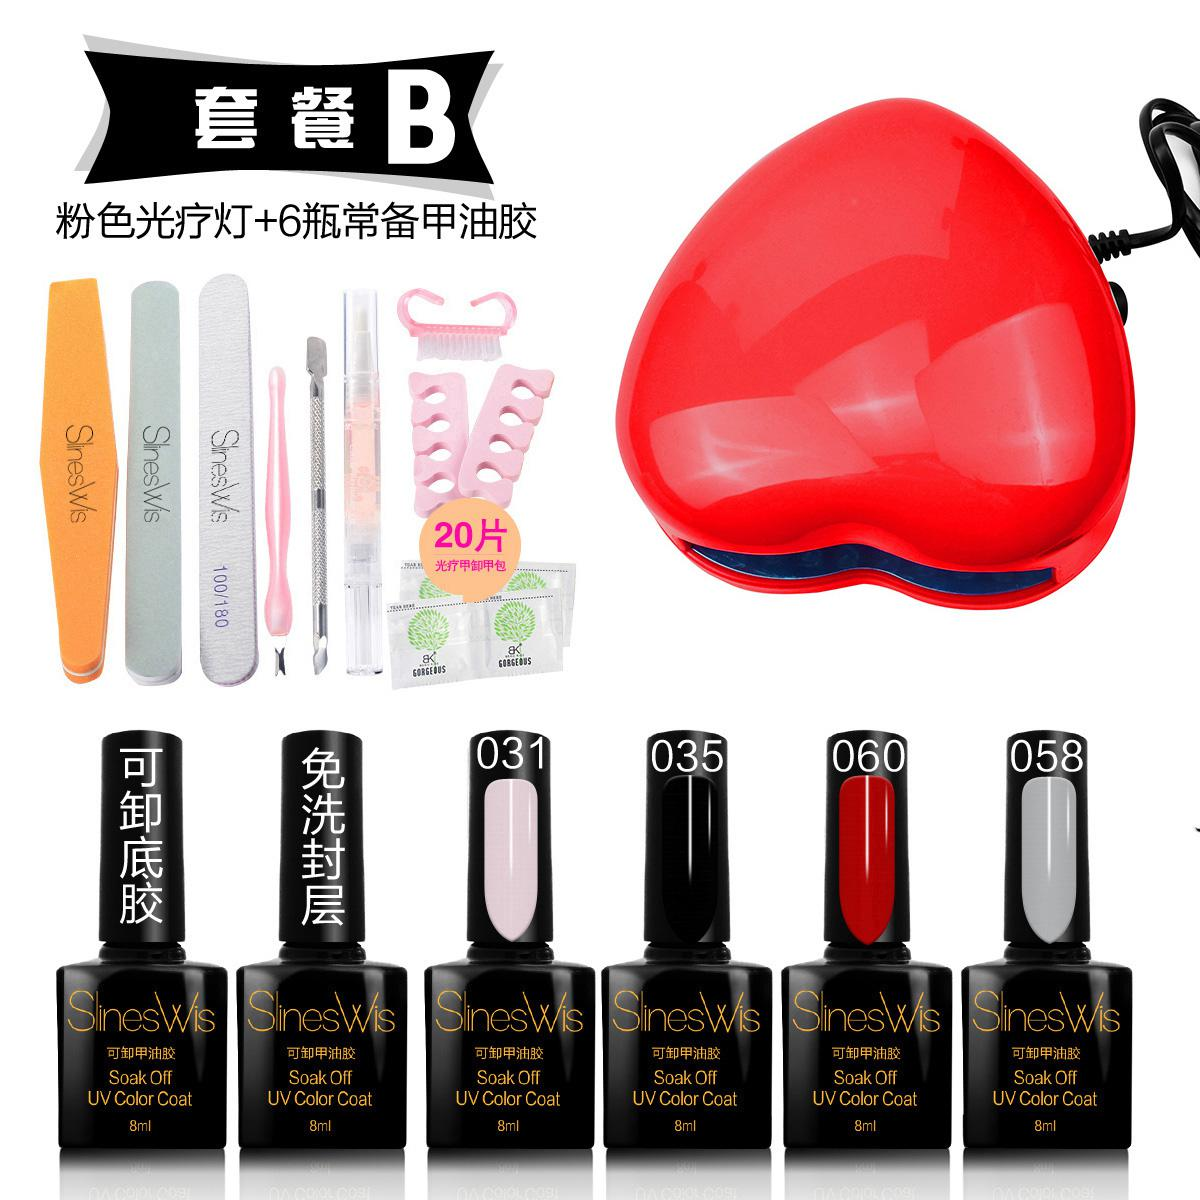 Set Manicure glue nail polish sticker lamp phototherapy rubber soles seal adhesive Manicure machine tool QQ full set